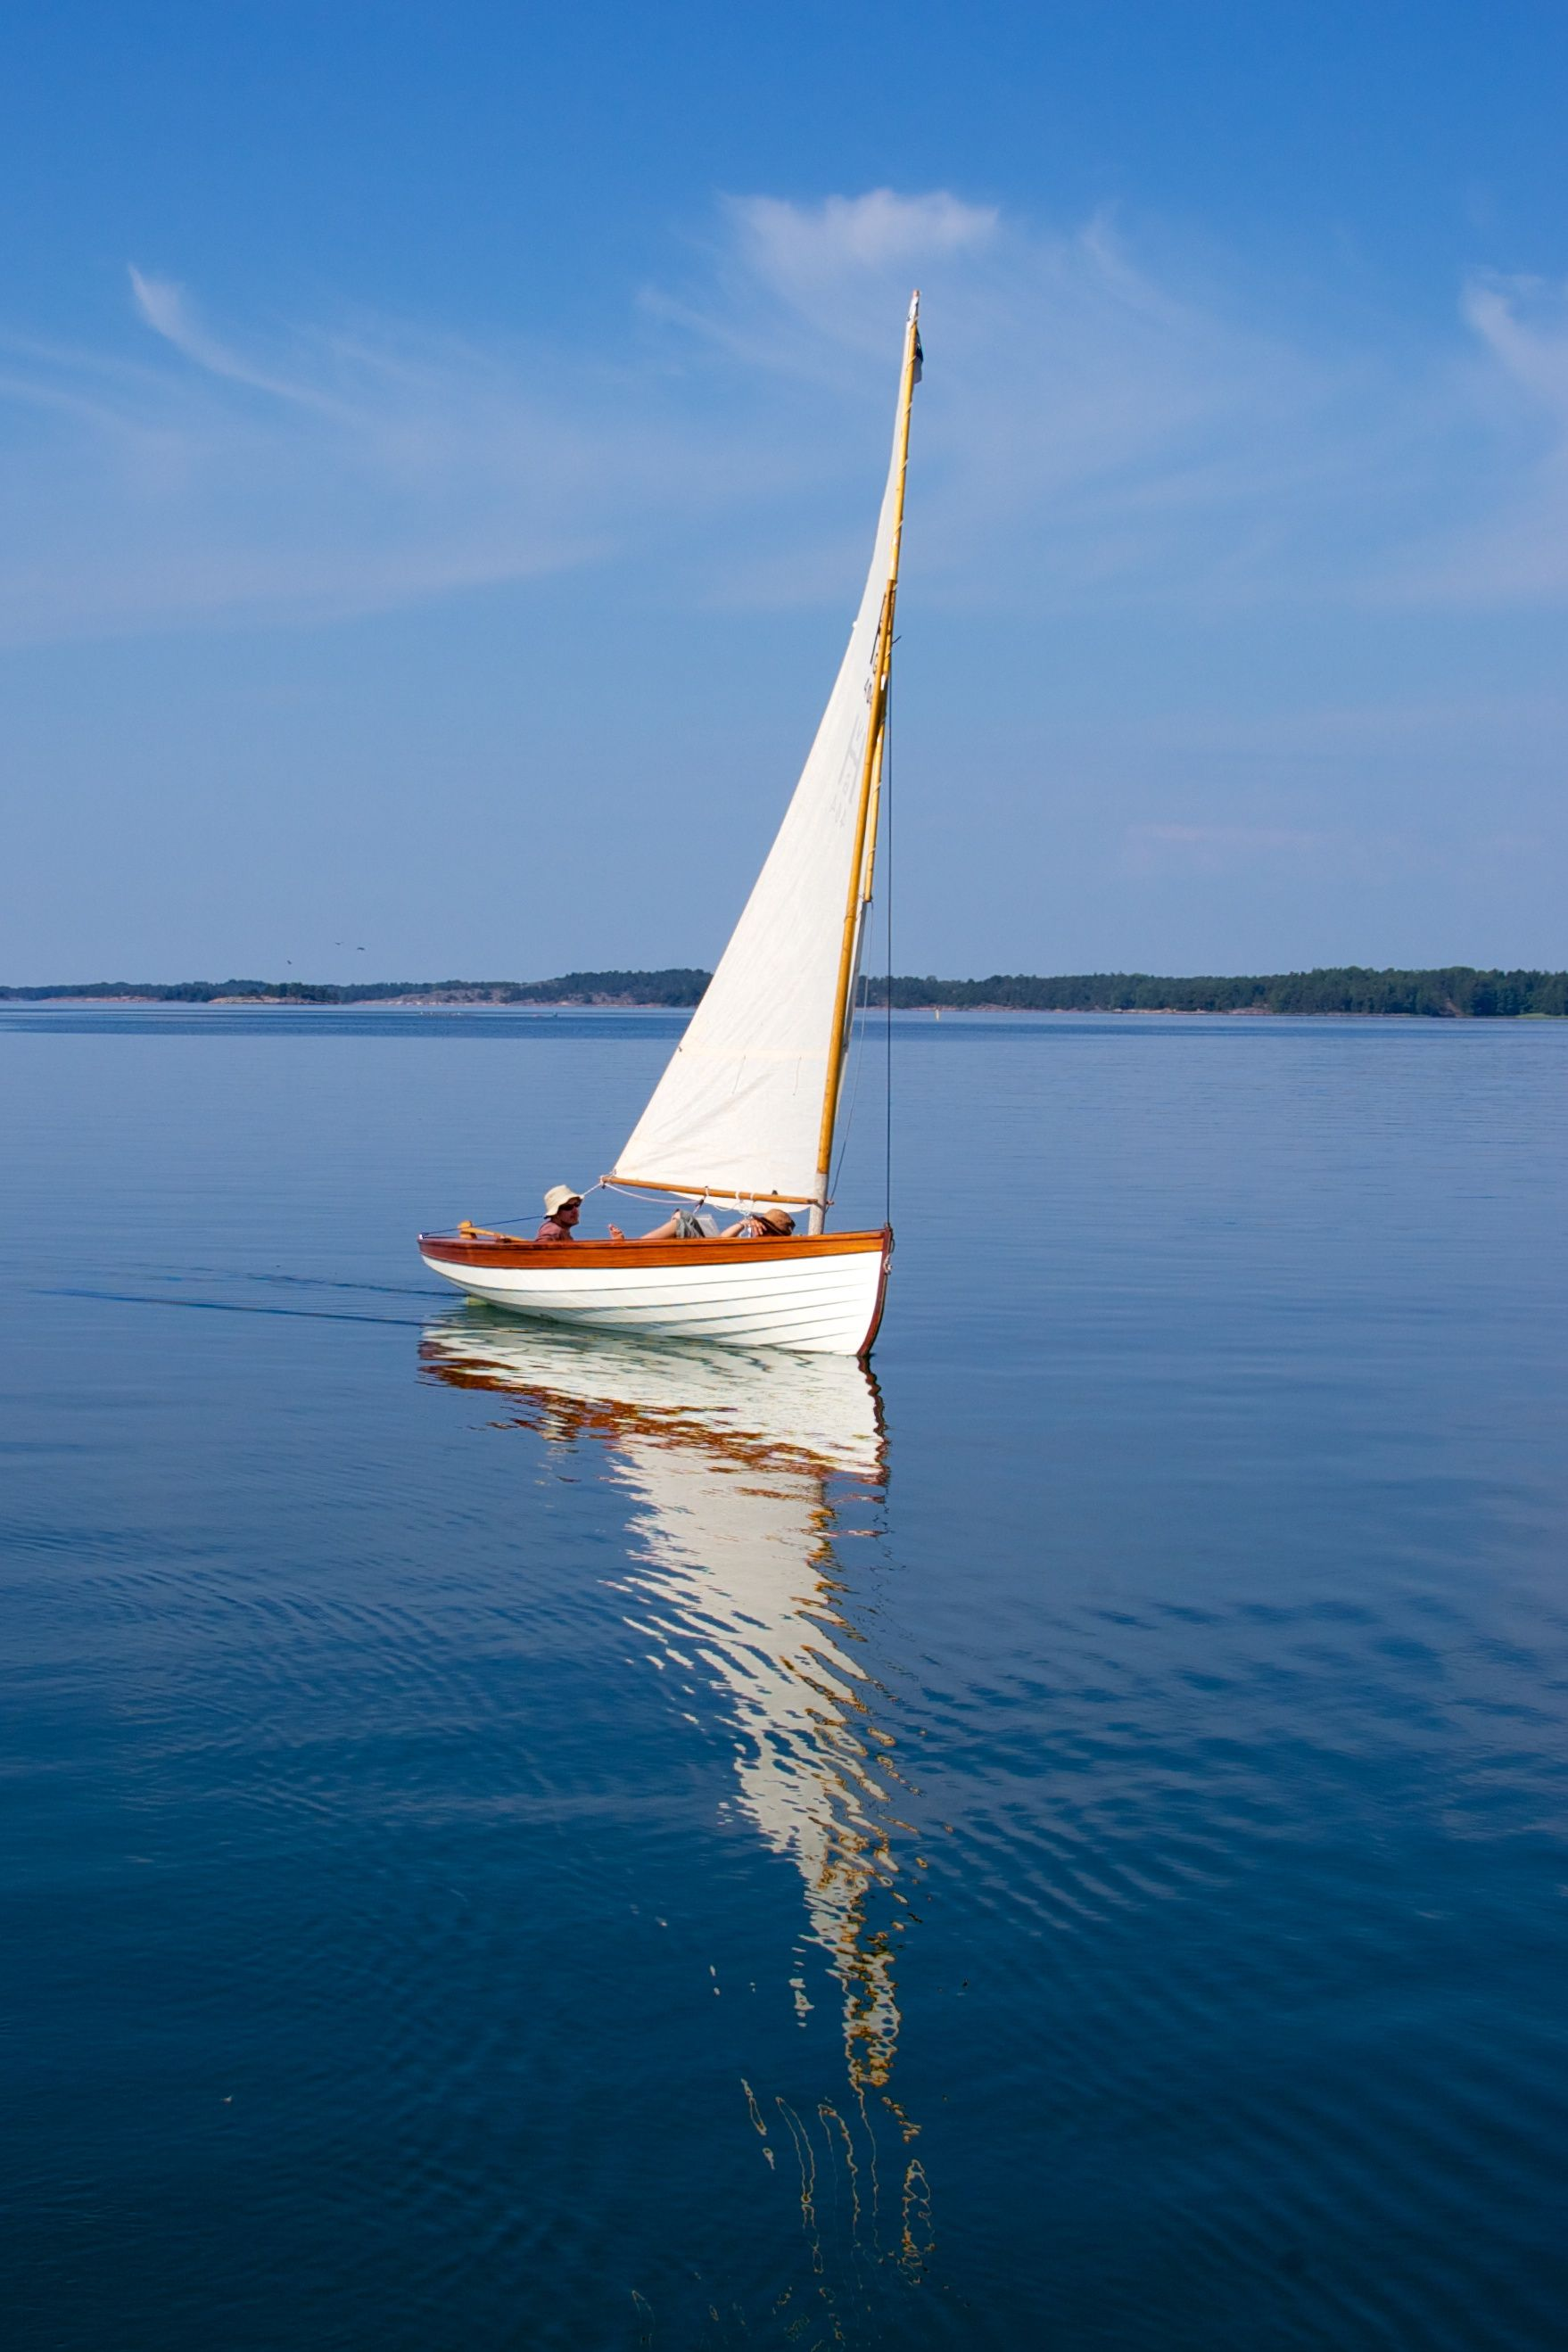 N. G. Herreshoff Coquina | Wooden Sail Dinghy in 2018 | Pinterest | Boating, Wooden boats and Dinghy